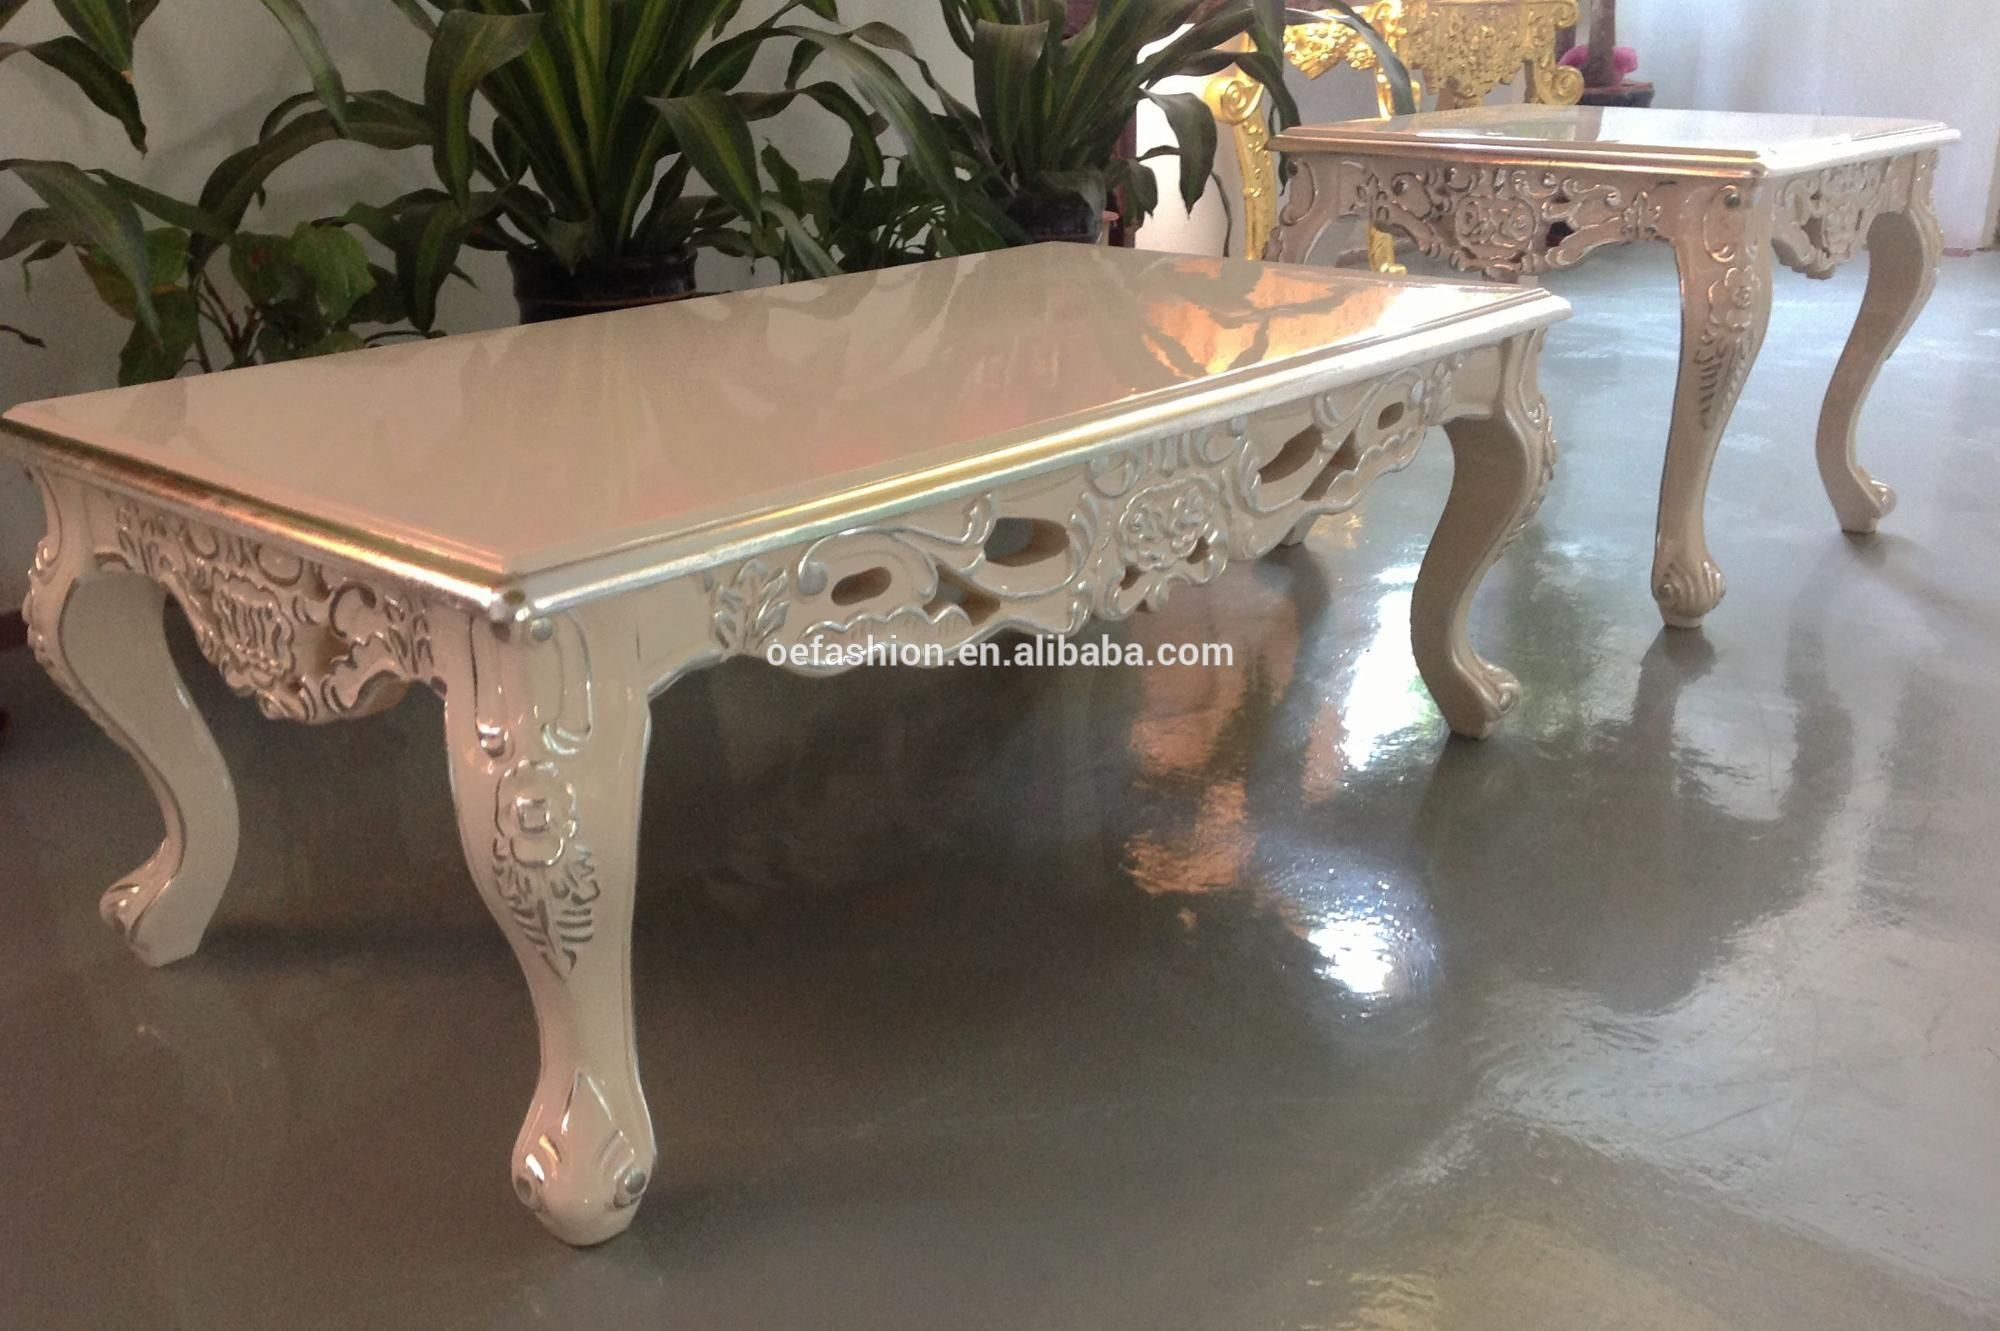 Oe Fashion White Simple Cheap Wood Center Table Design Coffee Table For Sale Buy Wood Center Table De Coffee Table Design Coffee Tables For Sale Table Design [ 1331 x 2000 Pixel ]